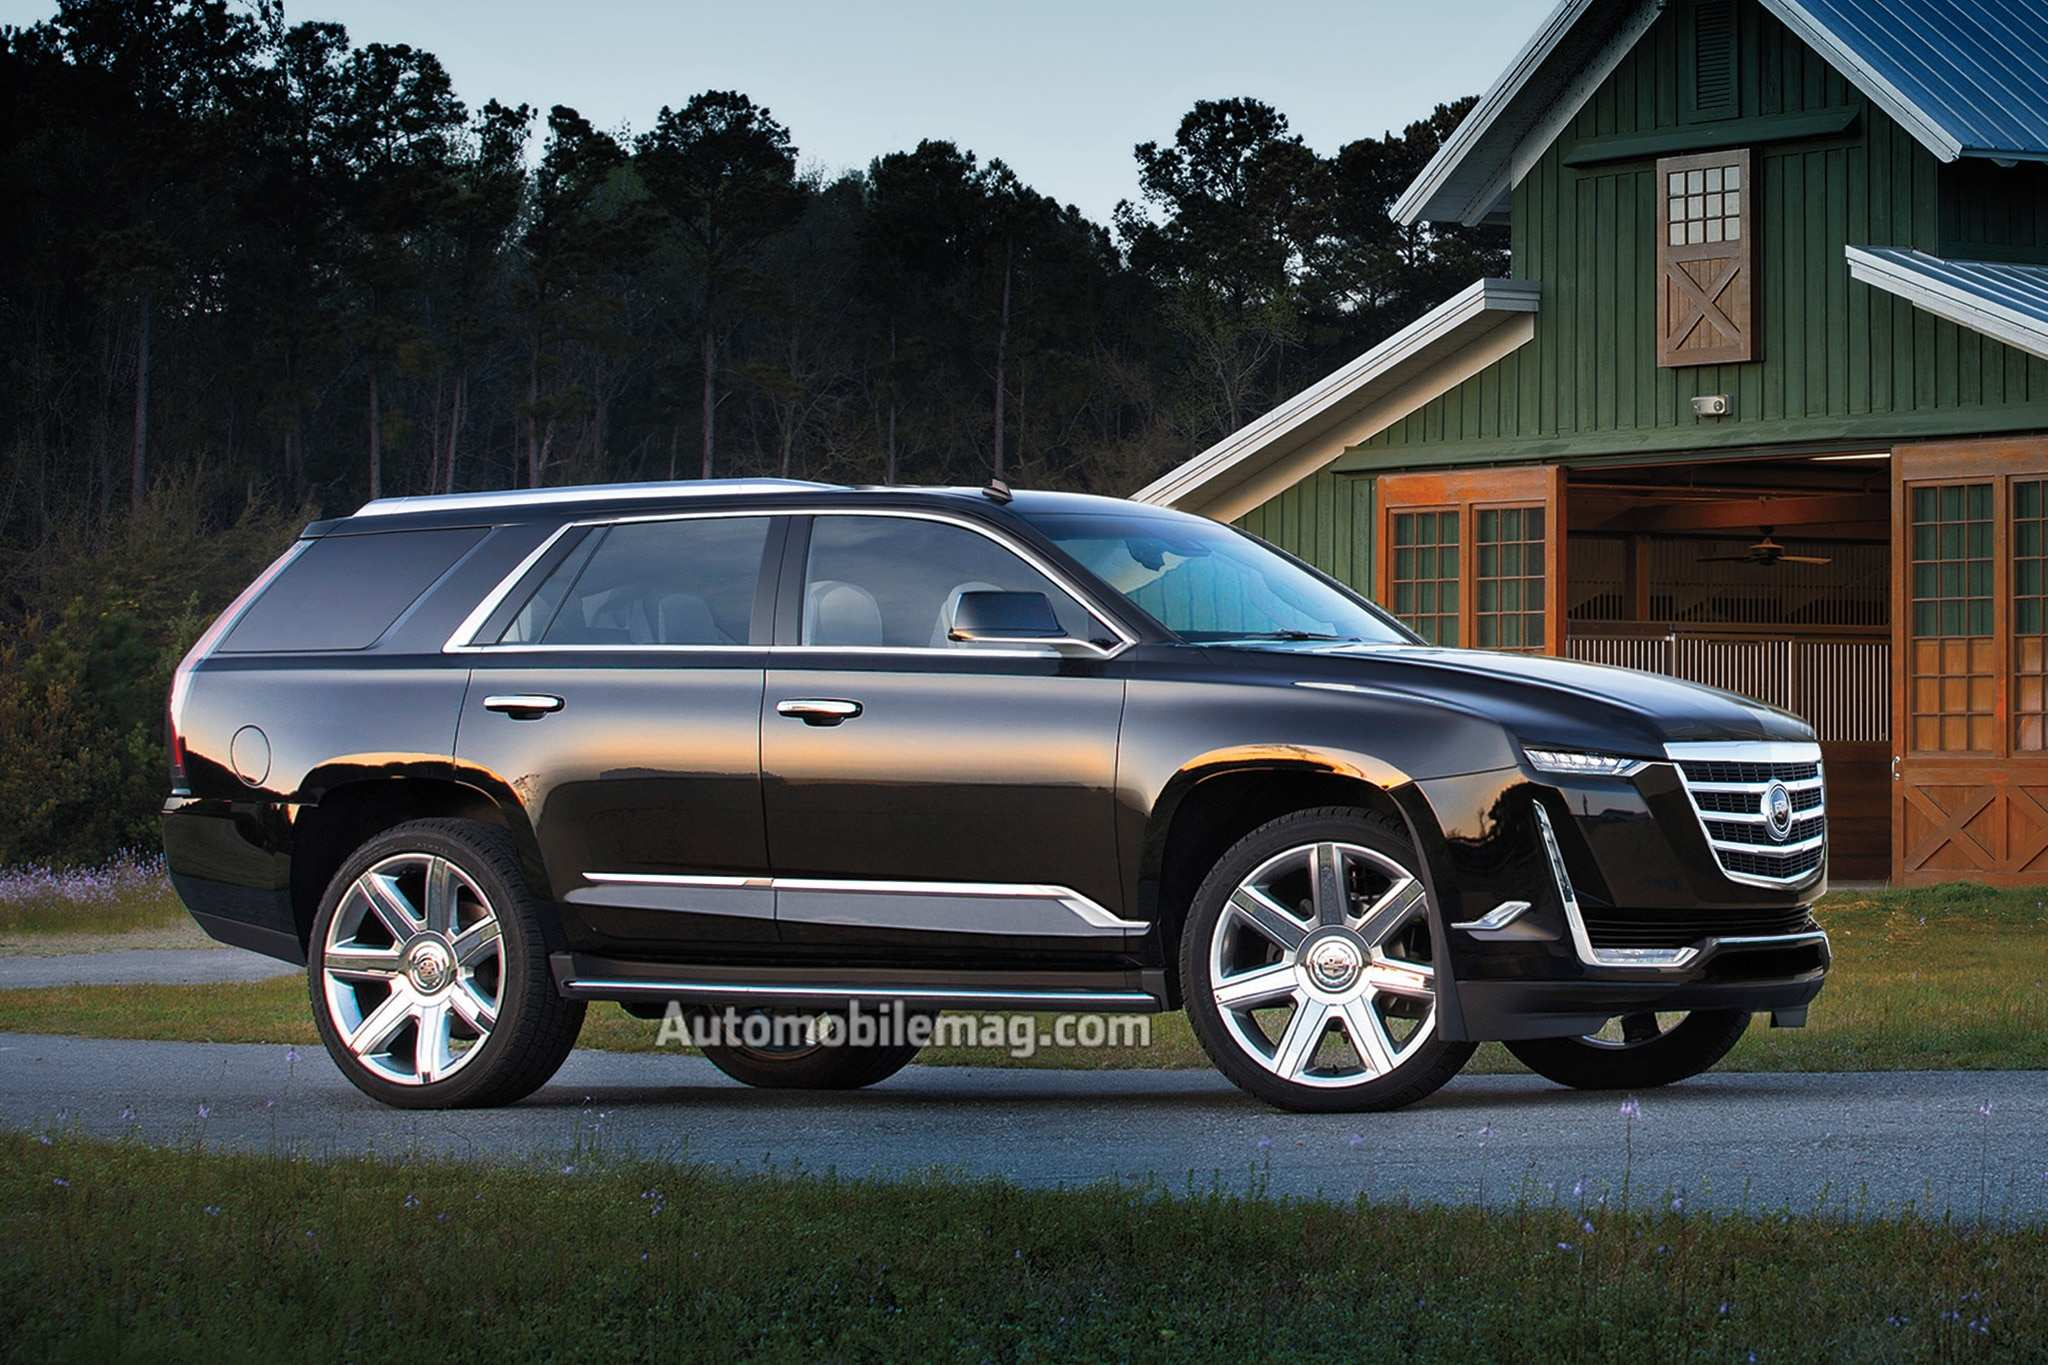 54 Best Review New Cadillac Models For 2020 Price by New Cadillac Models For 2020